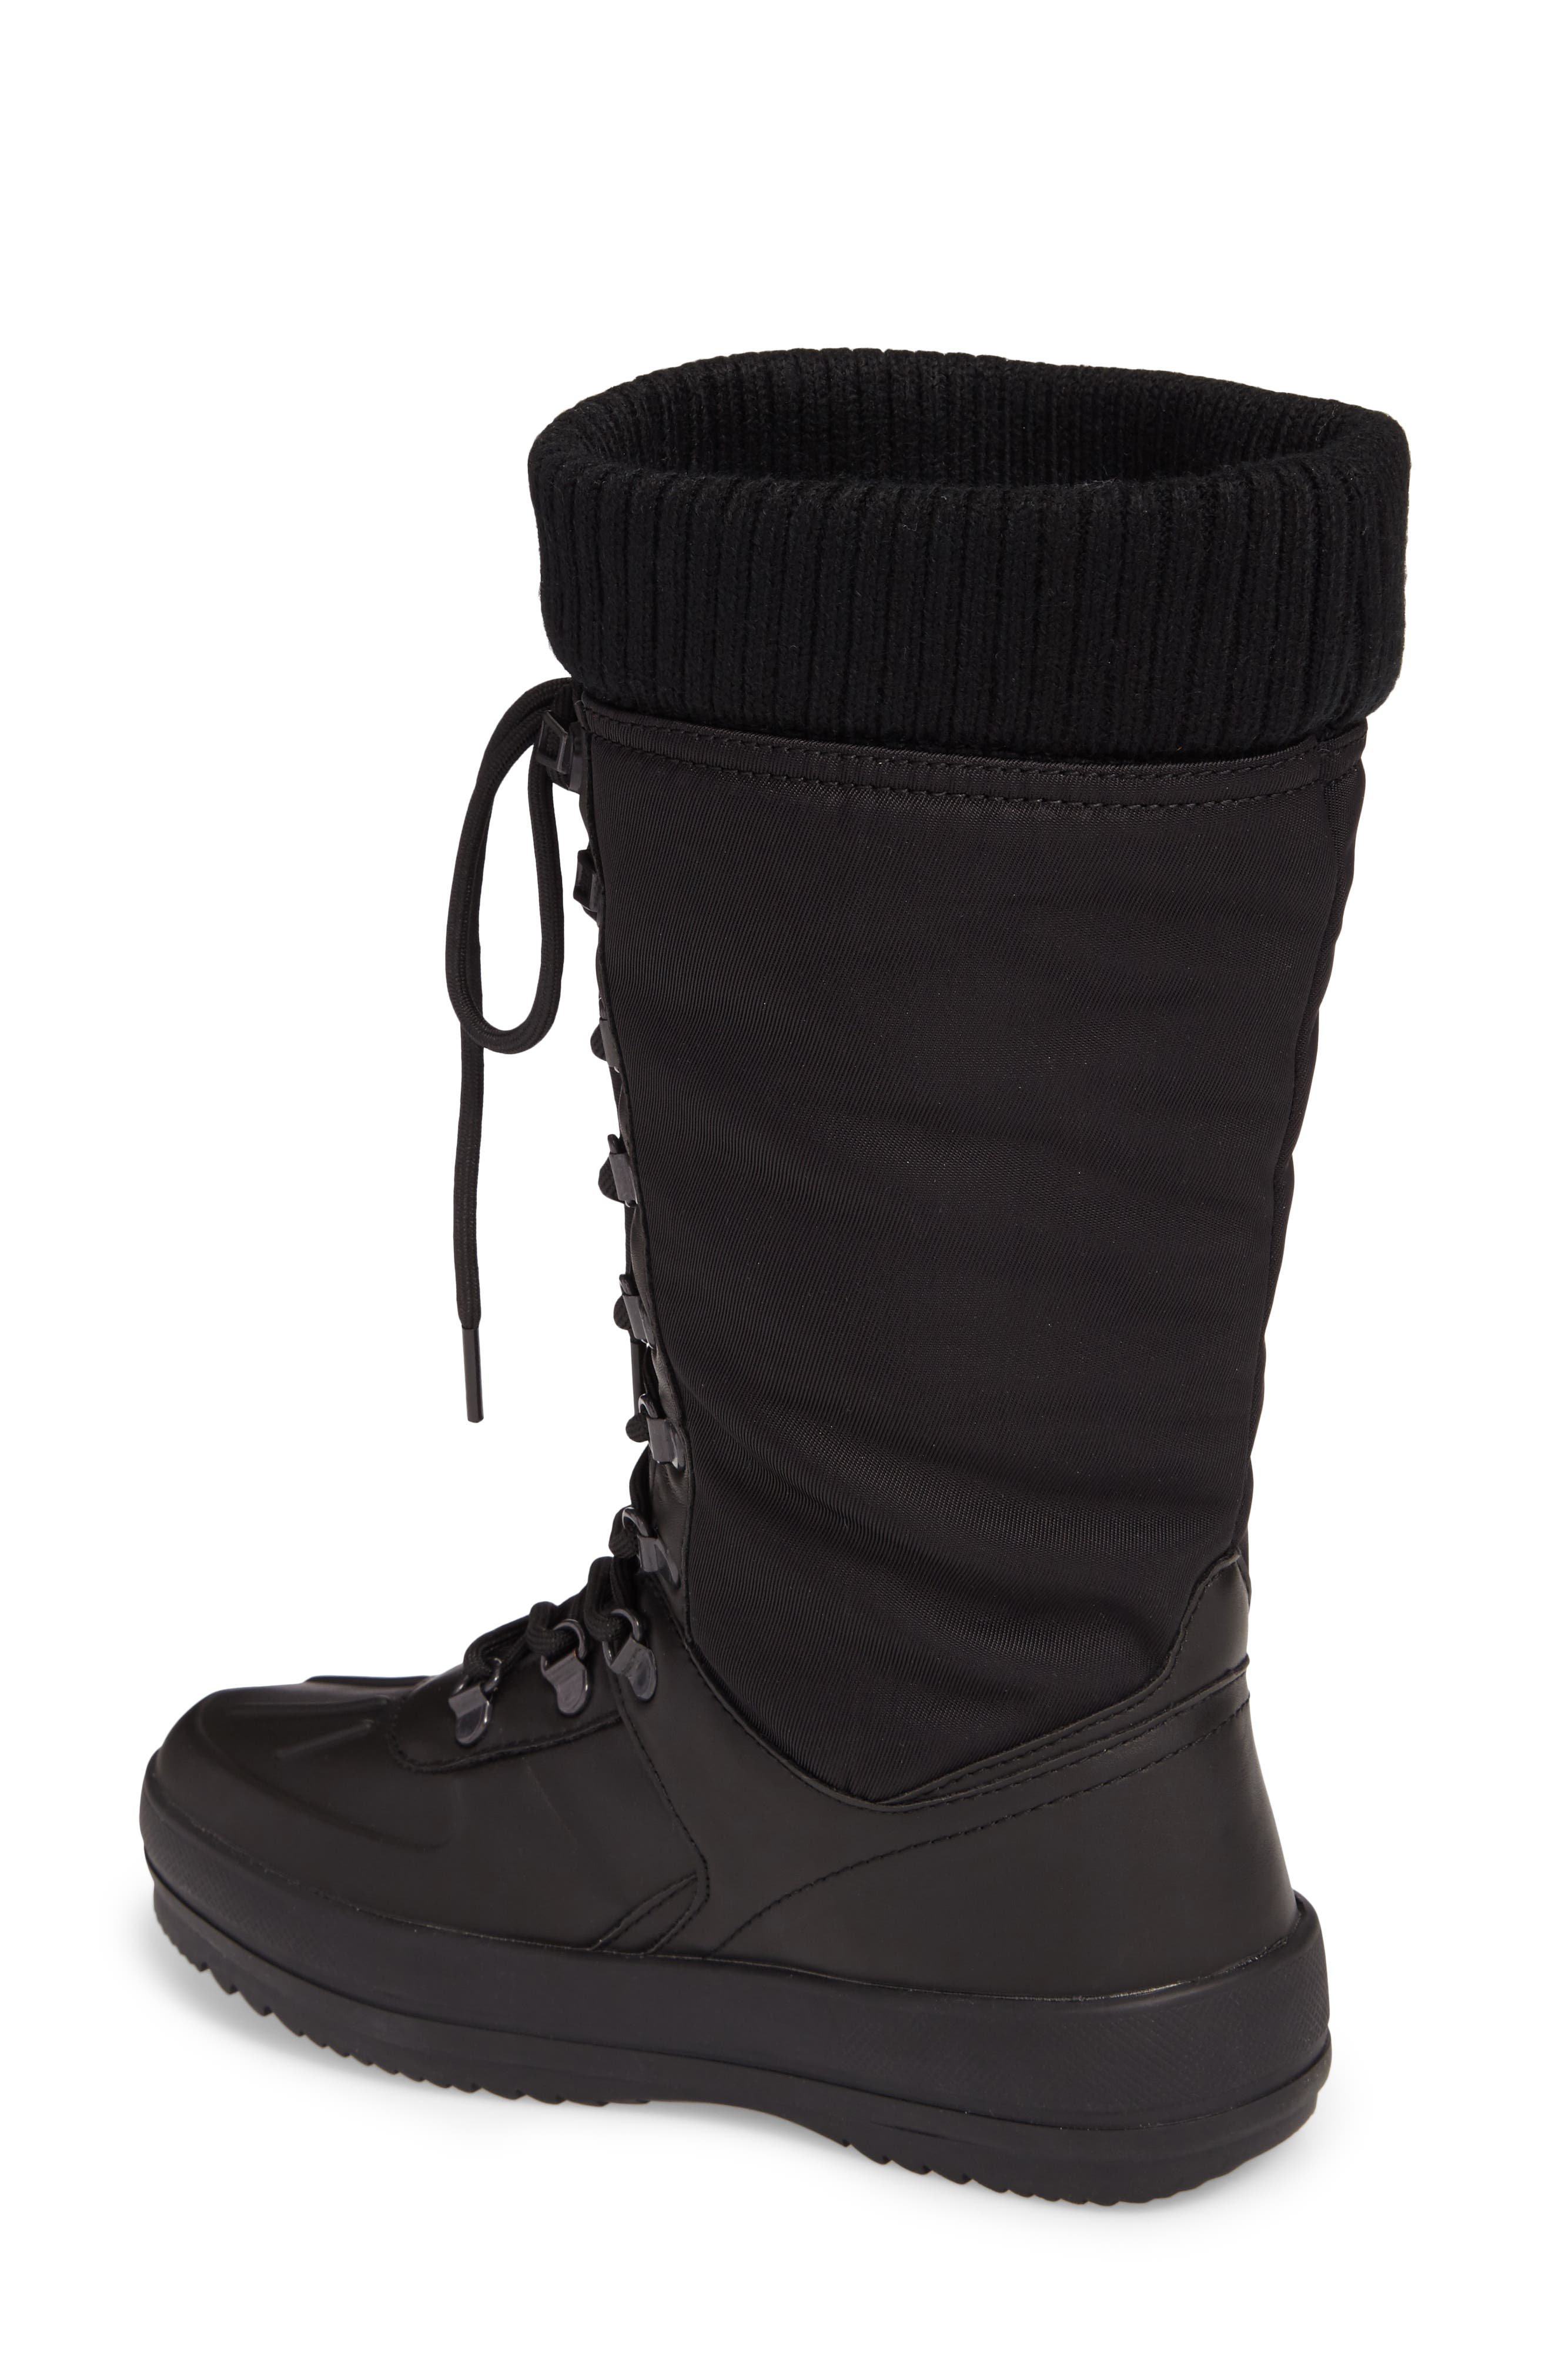 Vancouver Waterproof Winter Boot,                             Alternate thumbnail 5, color,